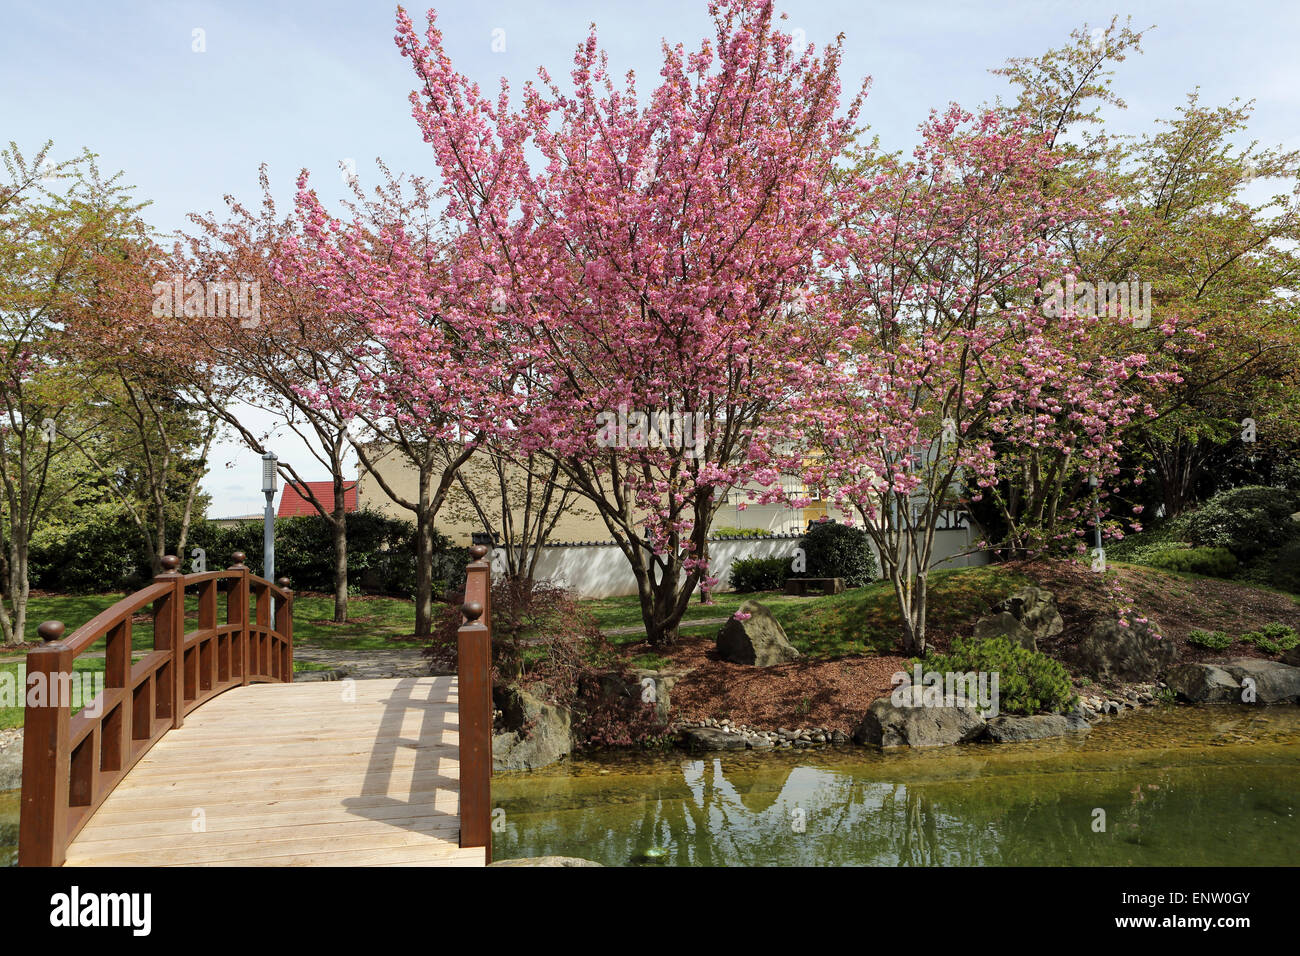 blossoming cherry trees and a traditional bridge in the japanese garden japanischer garten in bad langensalza germany - Japanese Garden Cherry Blossom Bridge